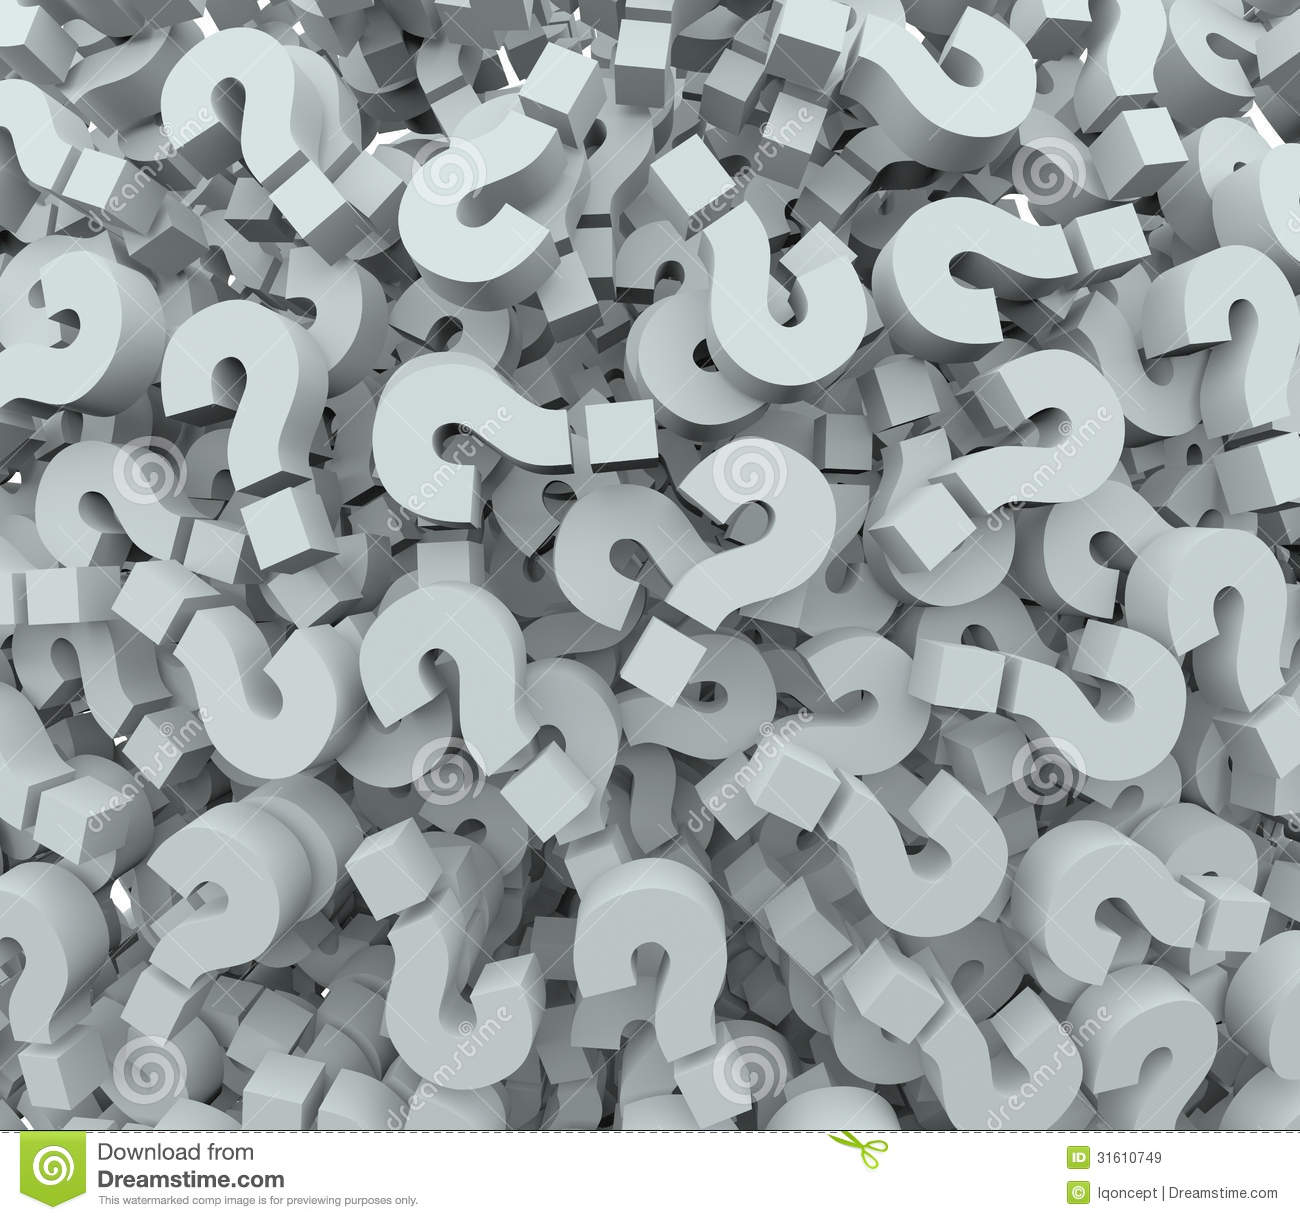 question stock image question mark background quiz test learning imagination 9236